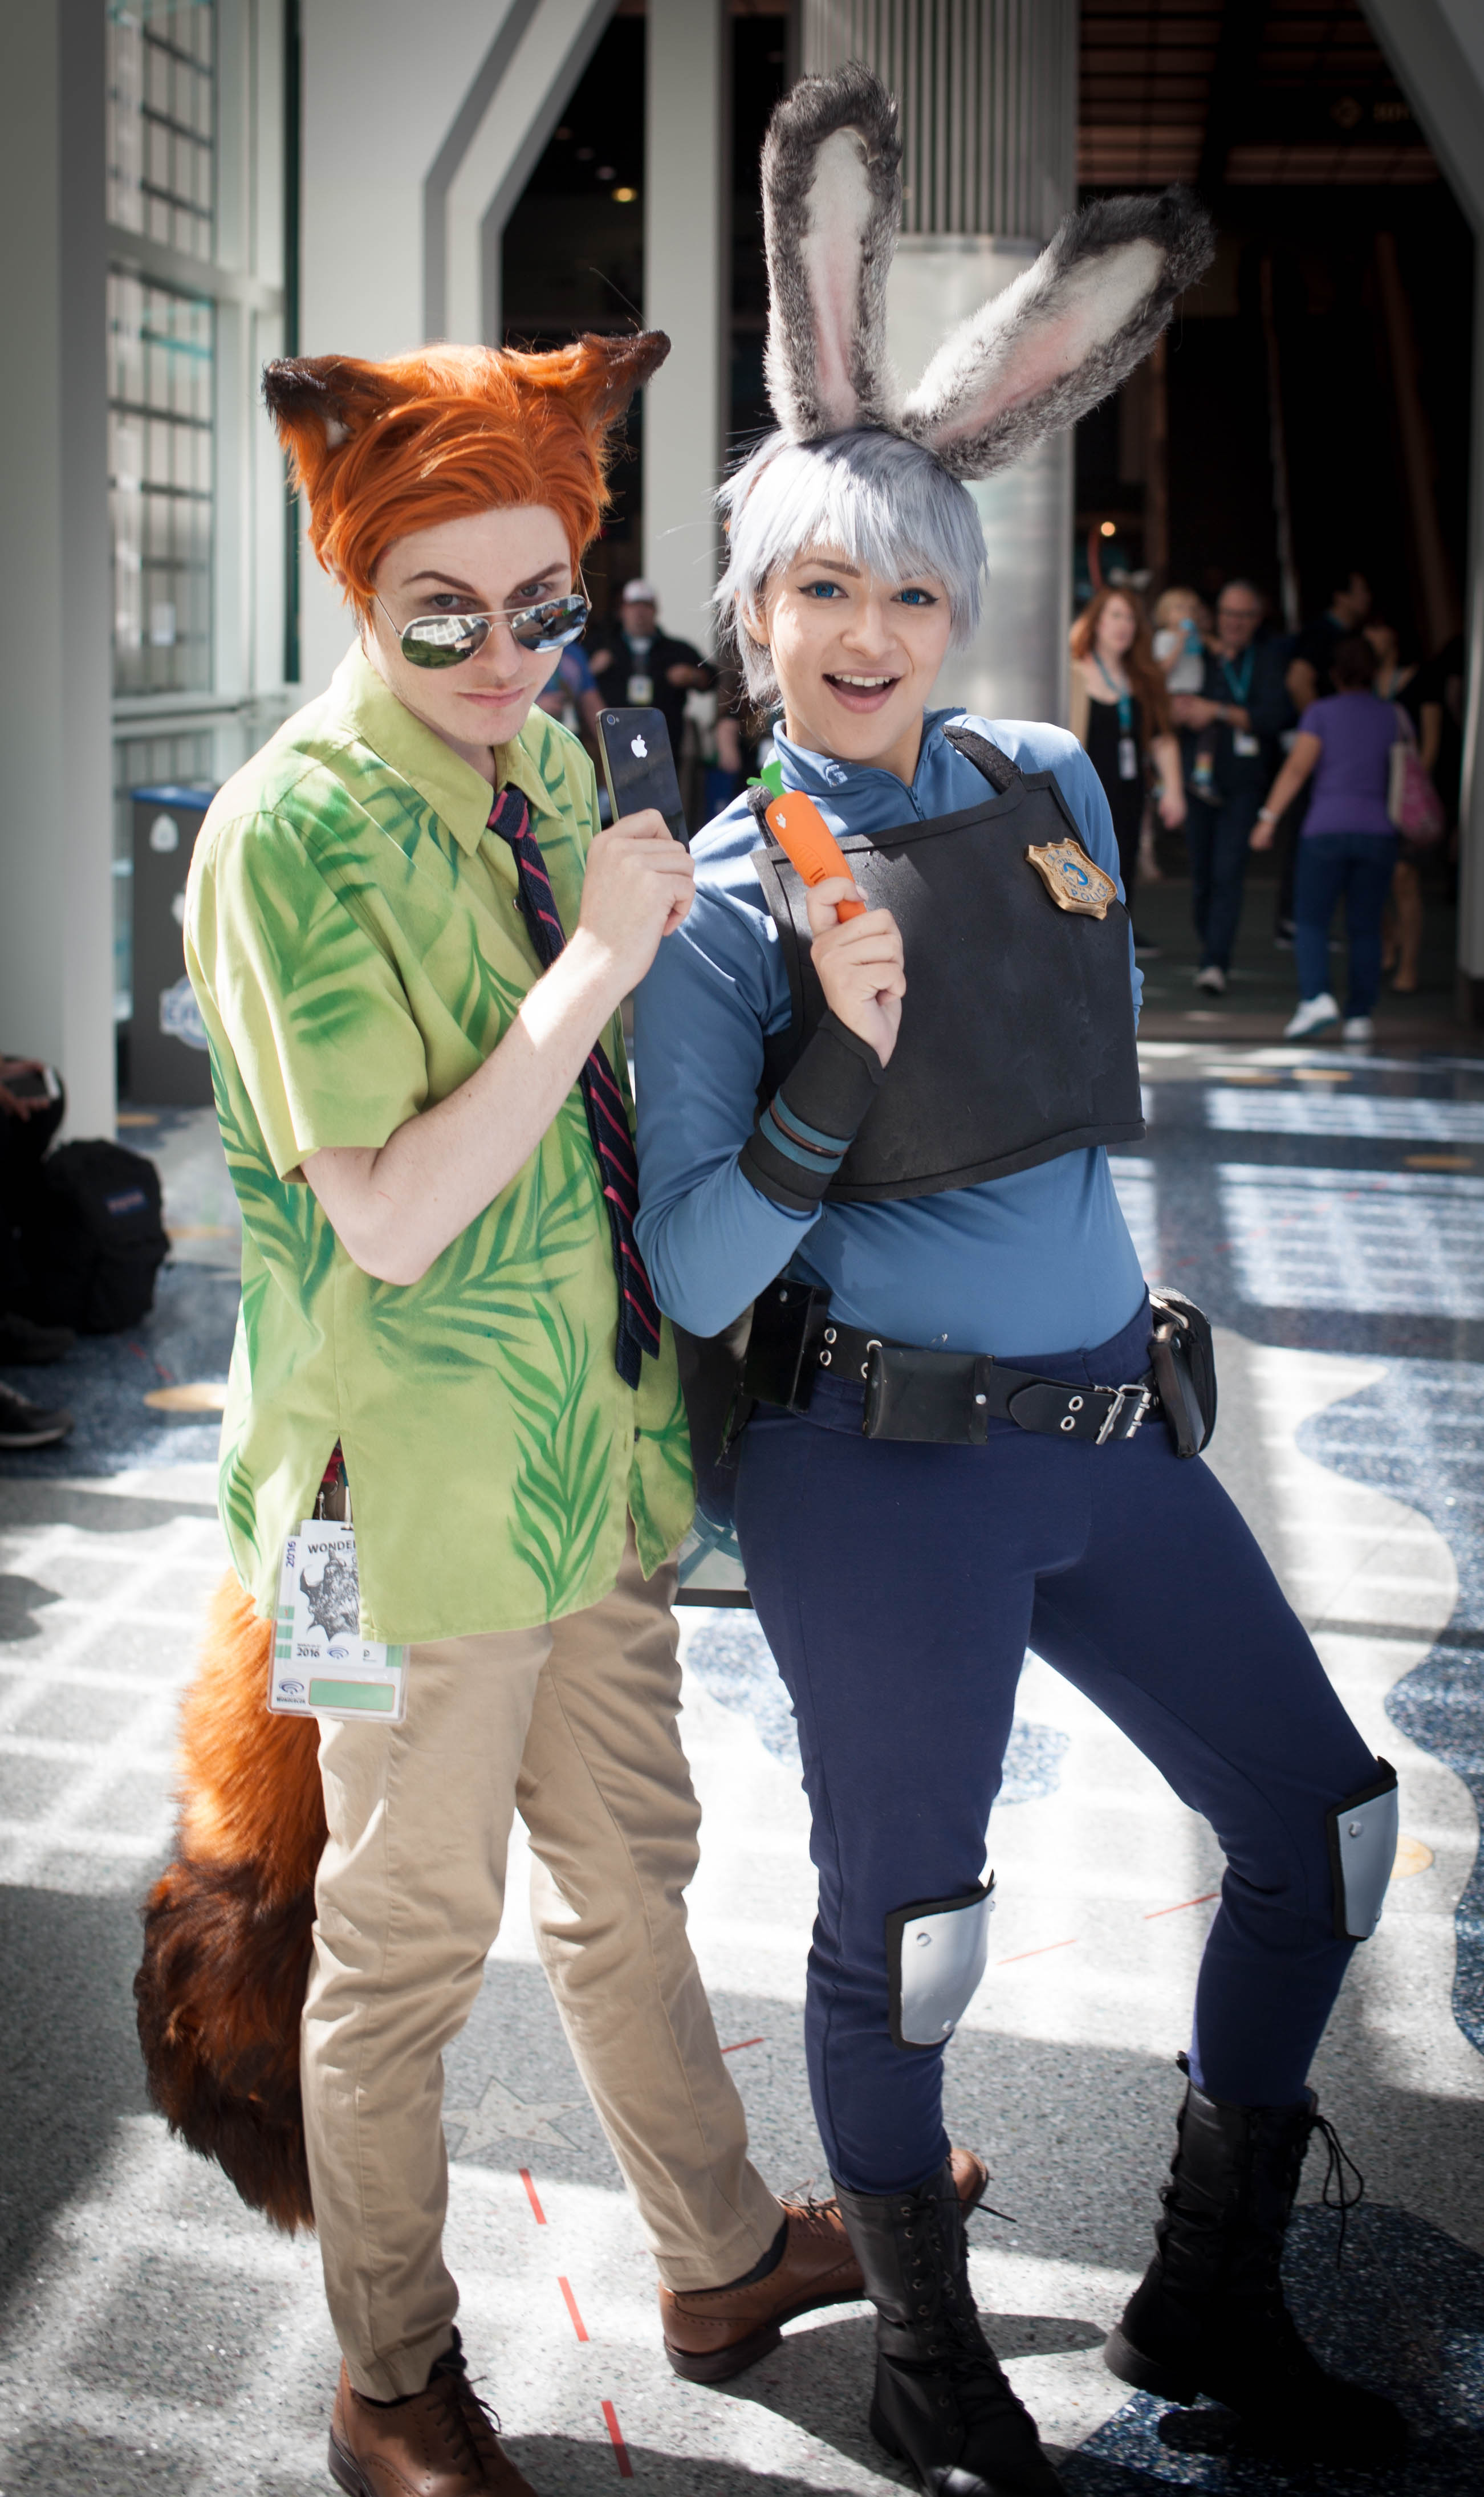 WonderCon Cosplay 2016 - Day One